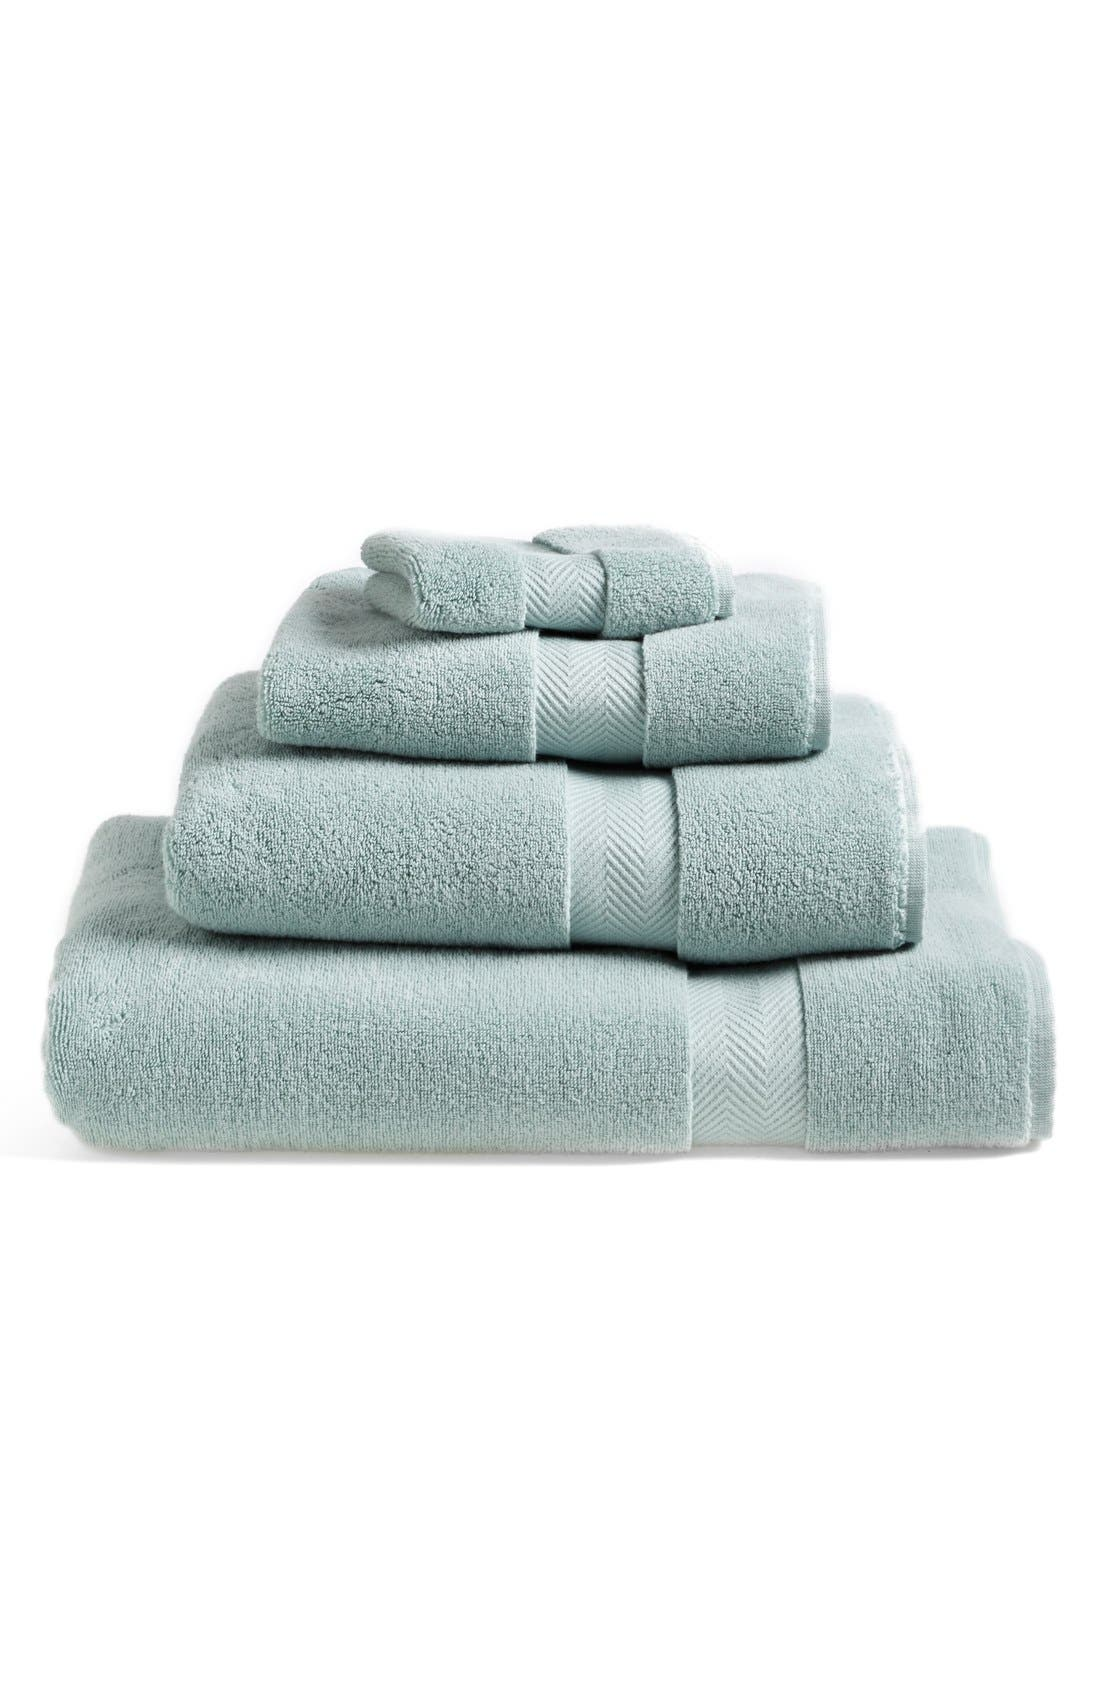 Nordstrom at Home Hydrocotton Towel Collection